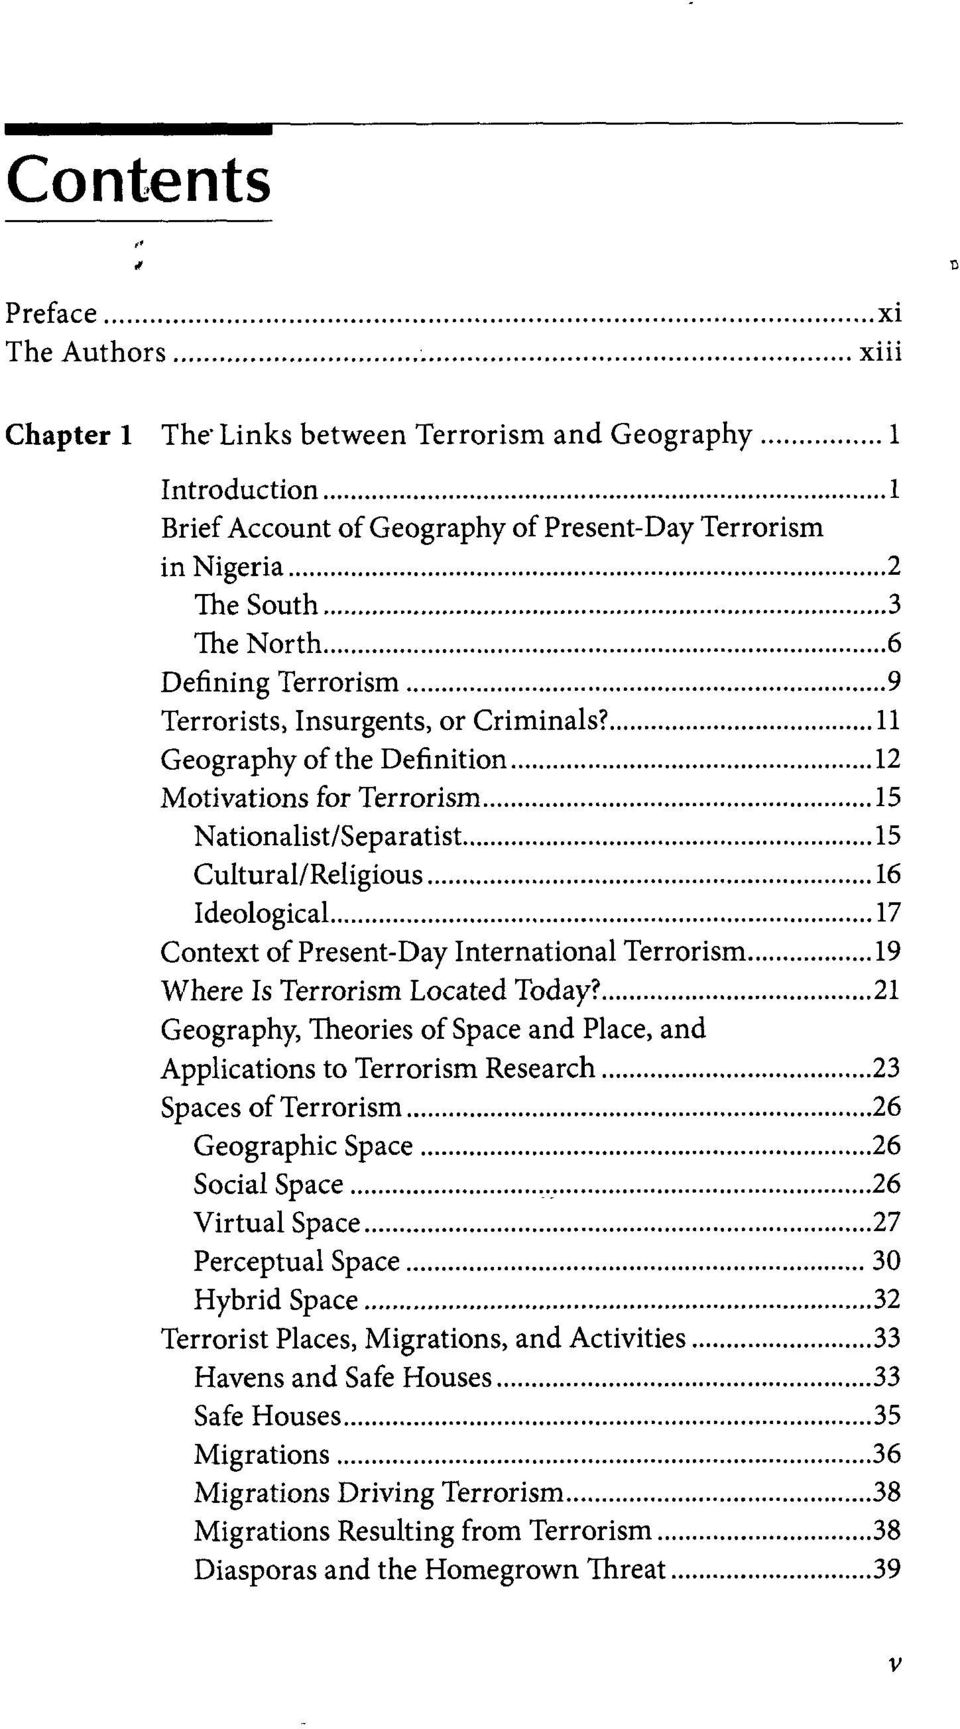 11 Geography of the Definition 12 Motivations for Terrorism 15 Nationalist/Separatist 15 Cultural/Religious 16 Ideological 17 Context of Present-Day International Terrorism 19 Where Is Terrorism